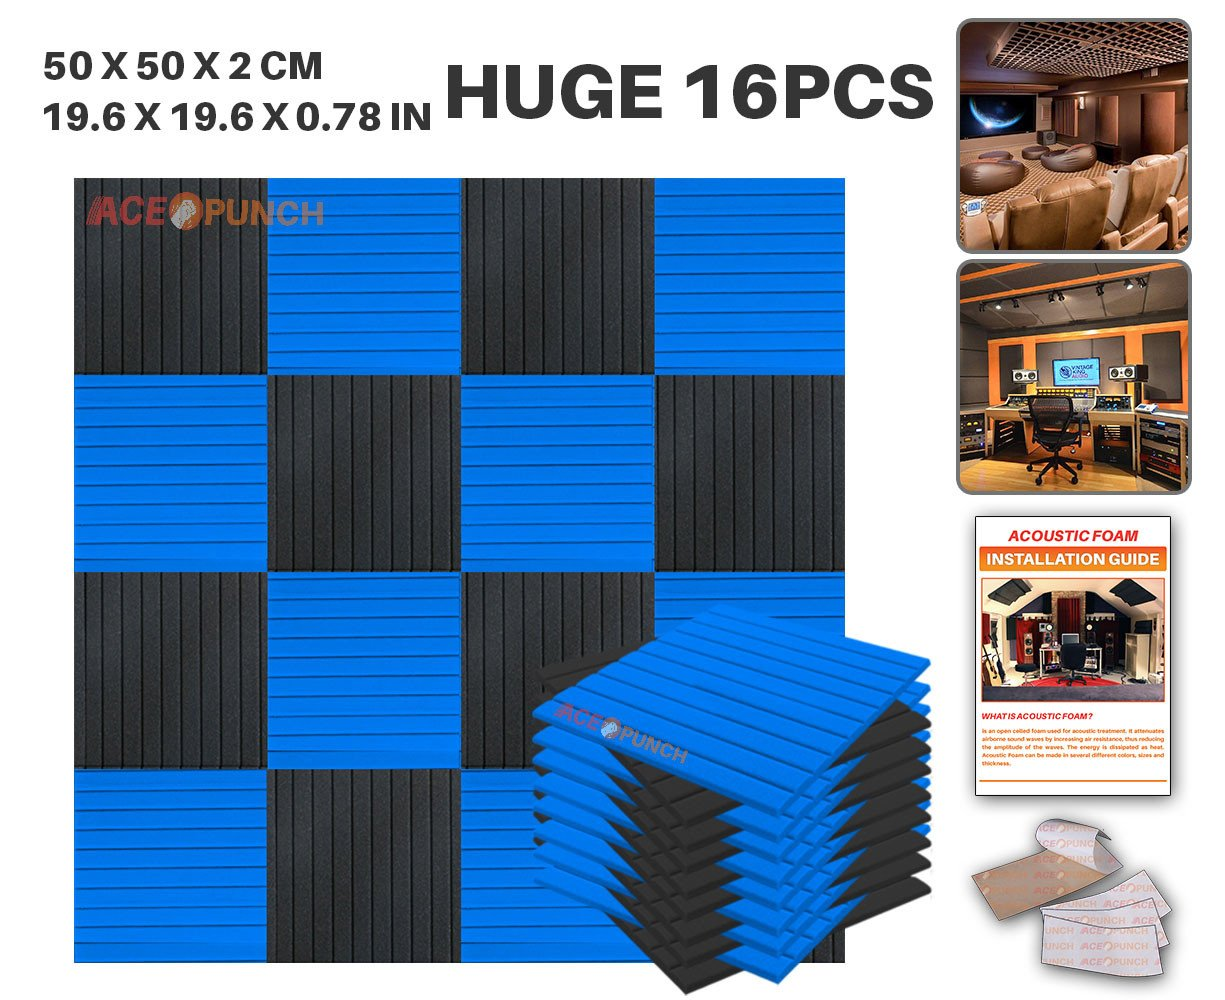 Ace Punch 16 Pack BLACK AND BLUE Color Combination Flat Wedge Acoustic Foam Panel DIY Design Studio Soundproofing Wall Tiles Sound Insulation with Free Mounting Tabs 19.6'' x 19.6'' x 0.8''